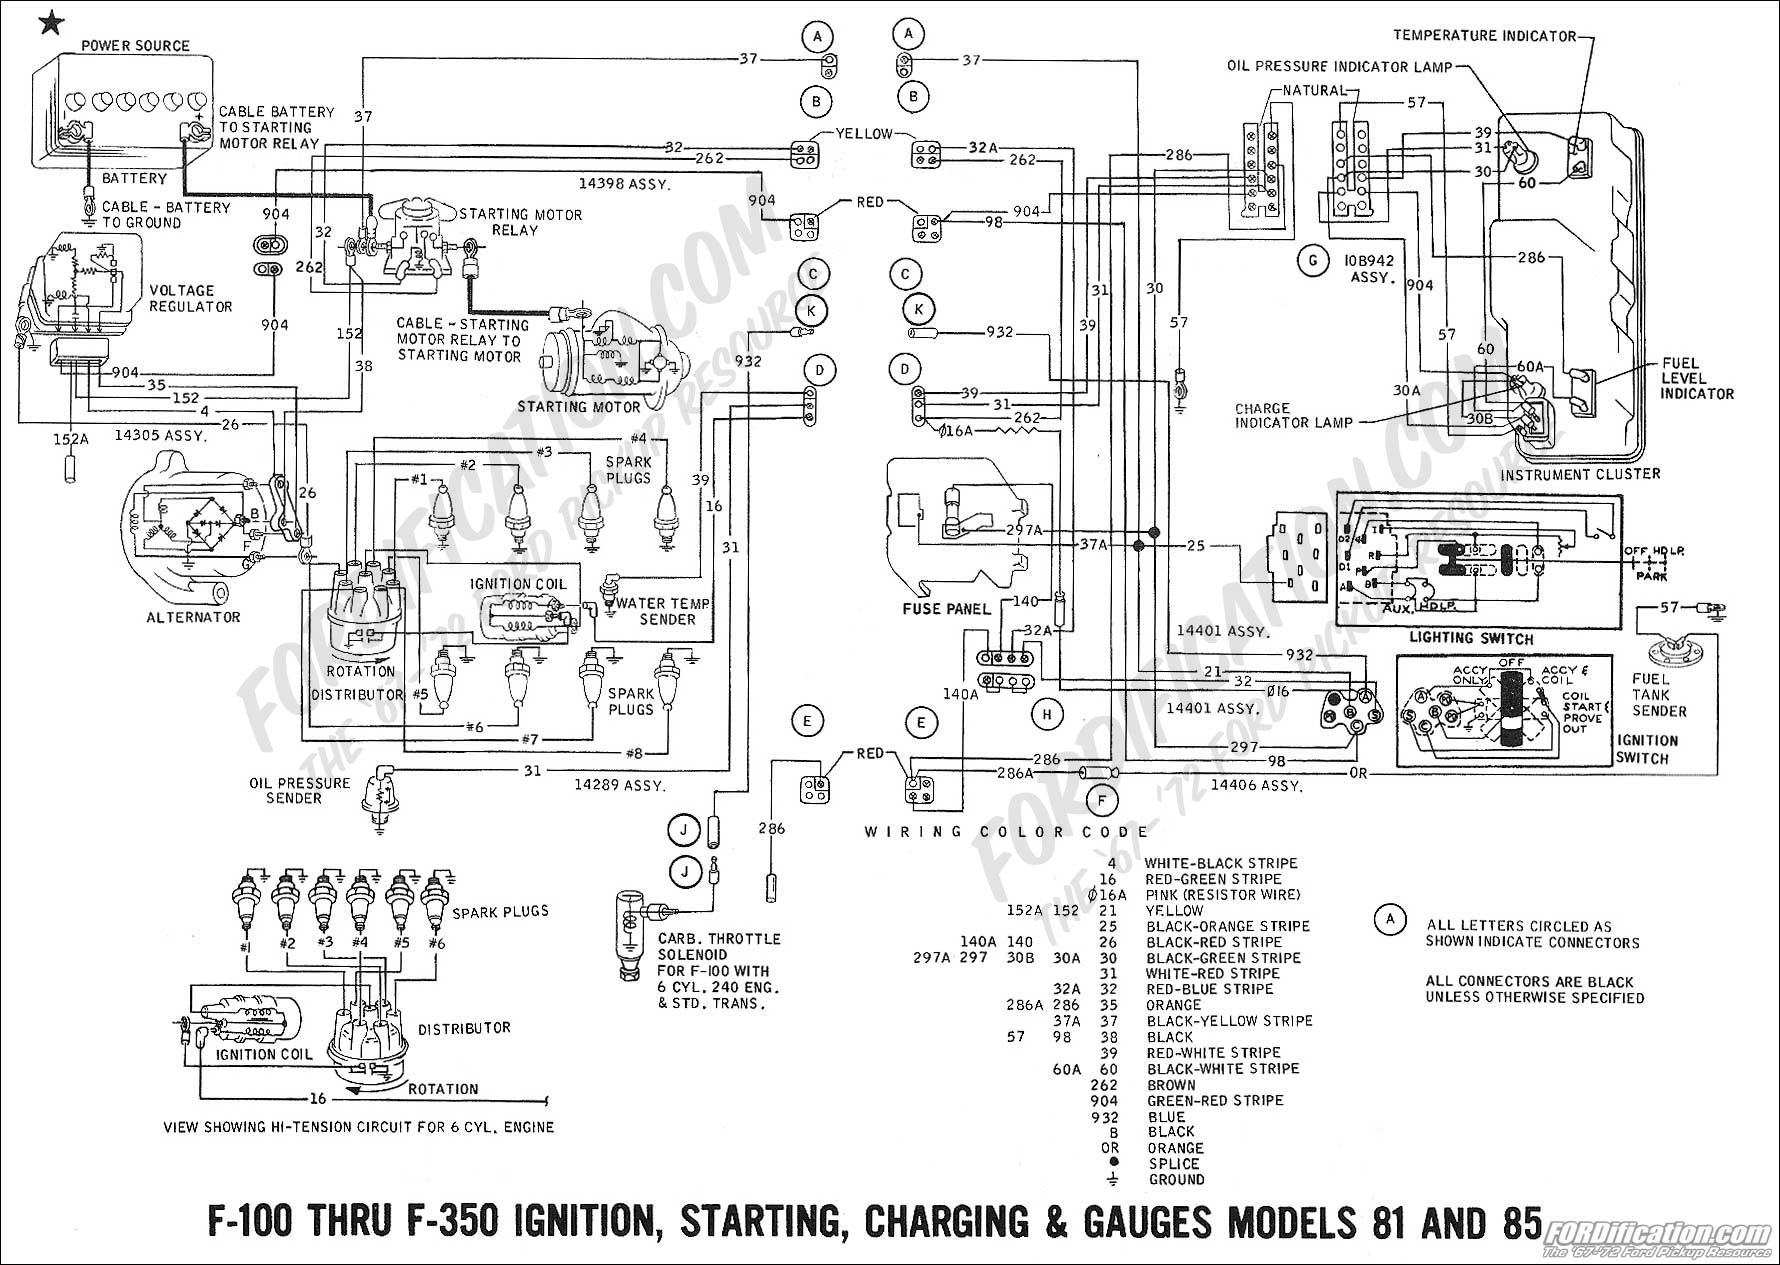 hight resolution of 1968 ford f100 wiring schematics wiring diagram img 1968 ford fairlane wiring diagram 1968 f100 wiring